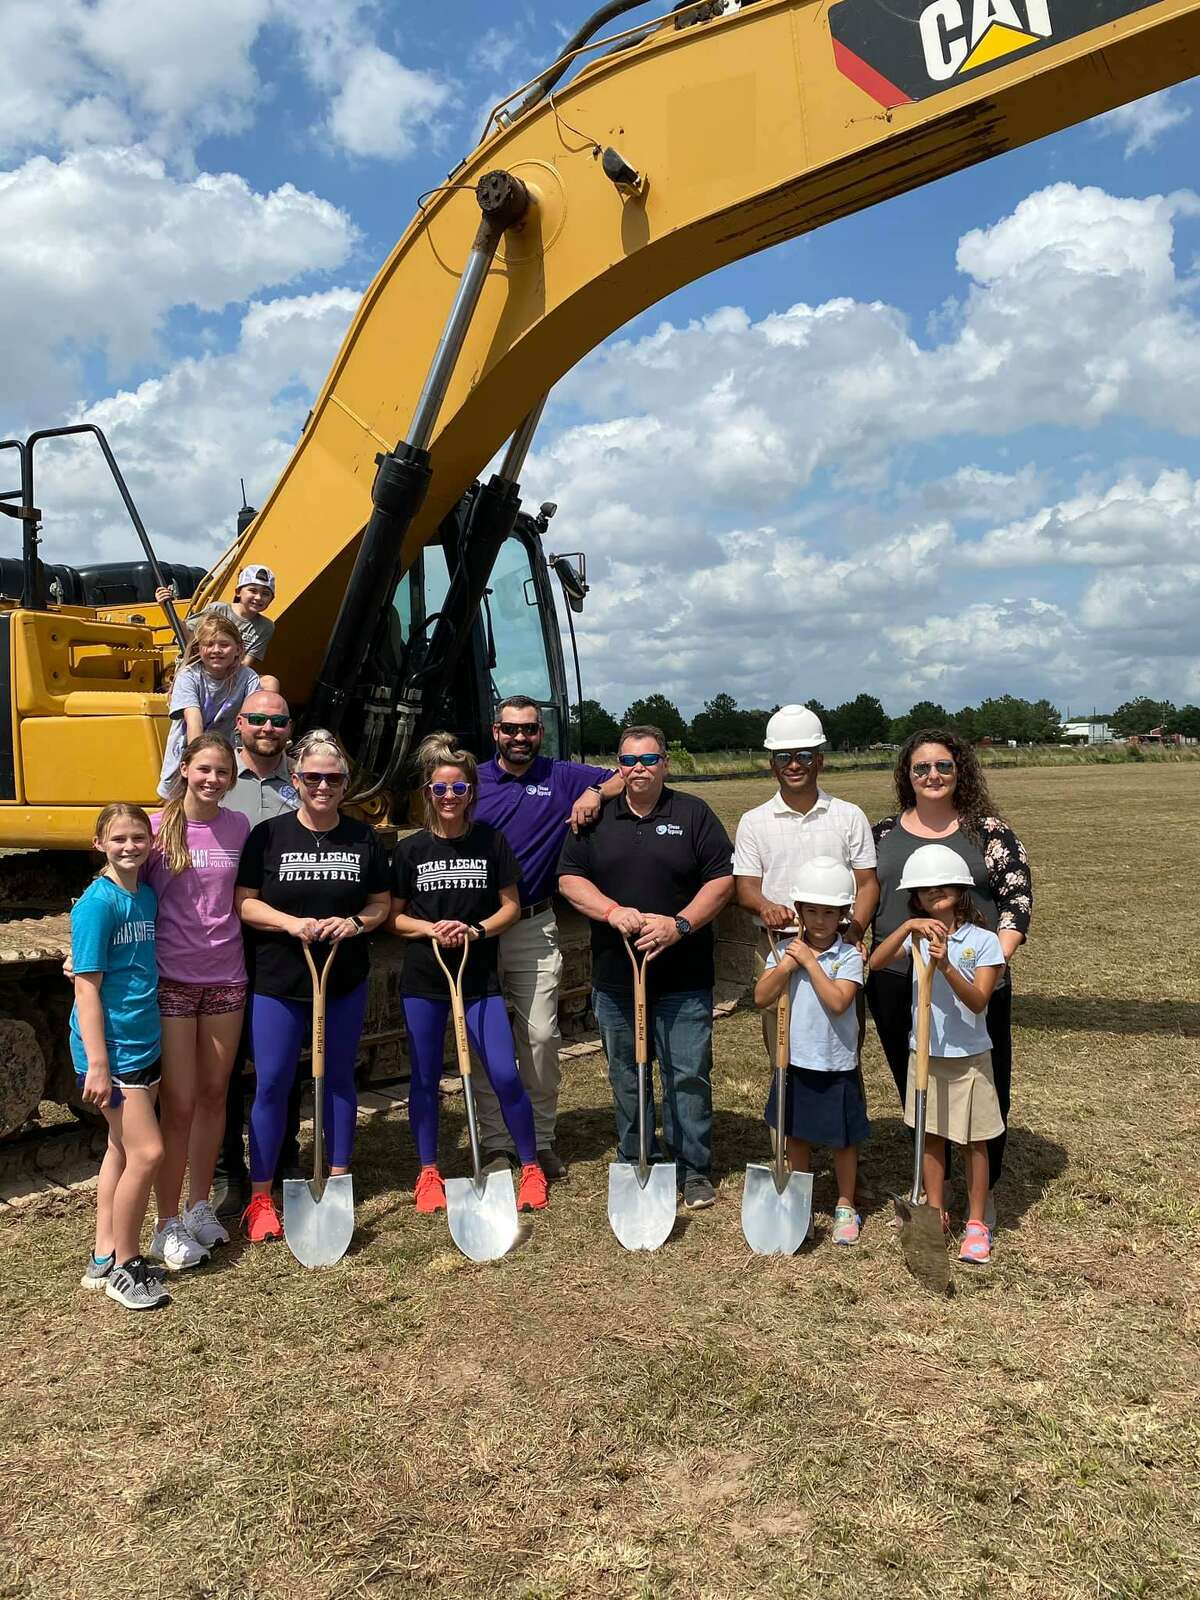 Texas Legacy Volleyball Club is getting a new home late 2021 in the Element Sportsplex. The complex is expected to be completed by November and is tentatively scheduled to open later that month.